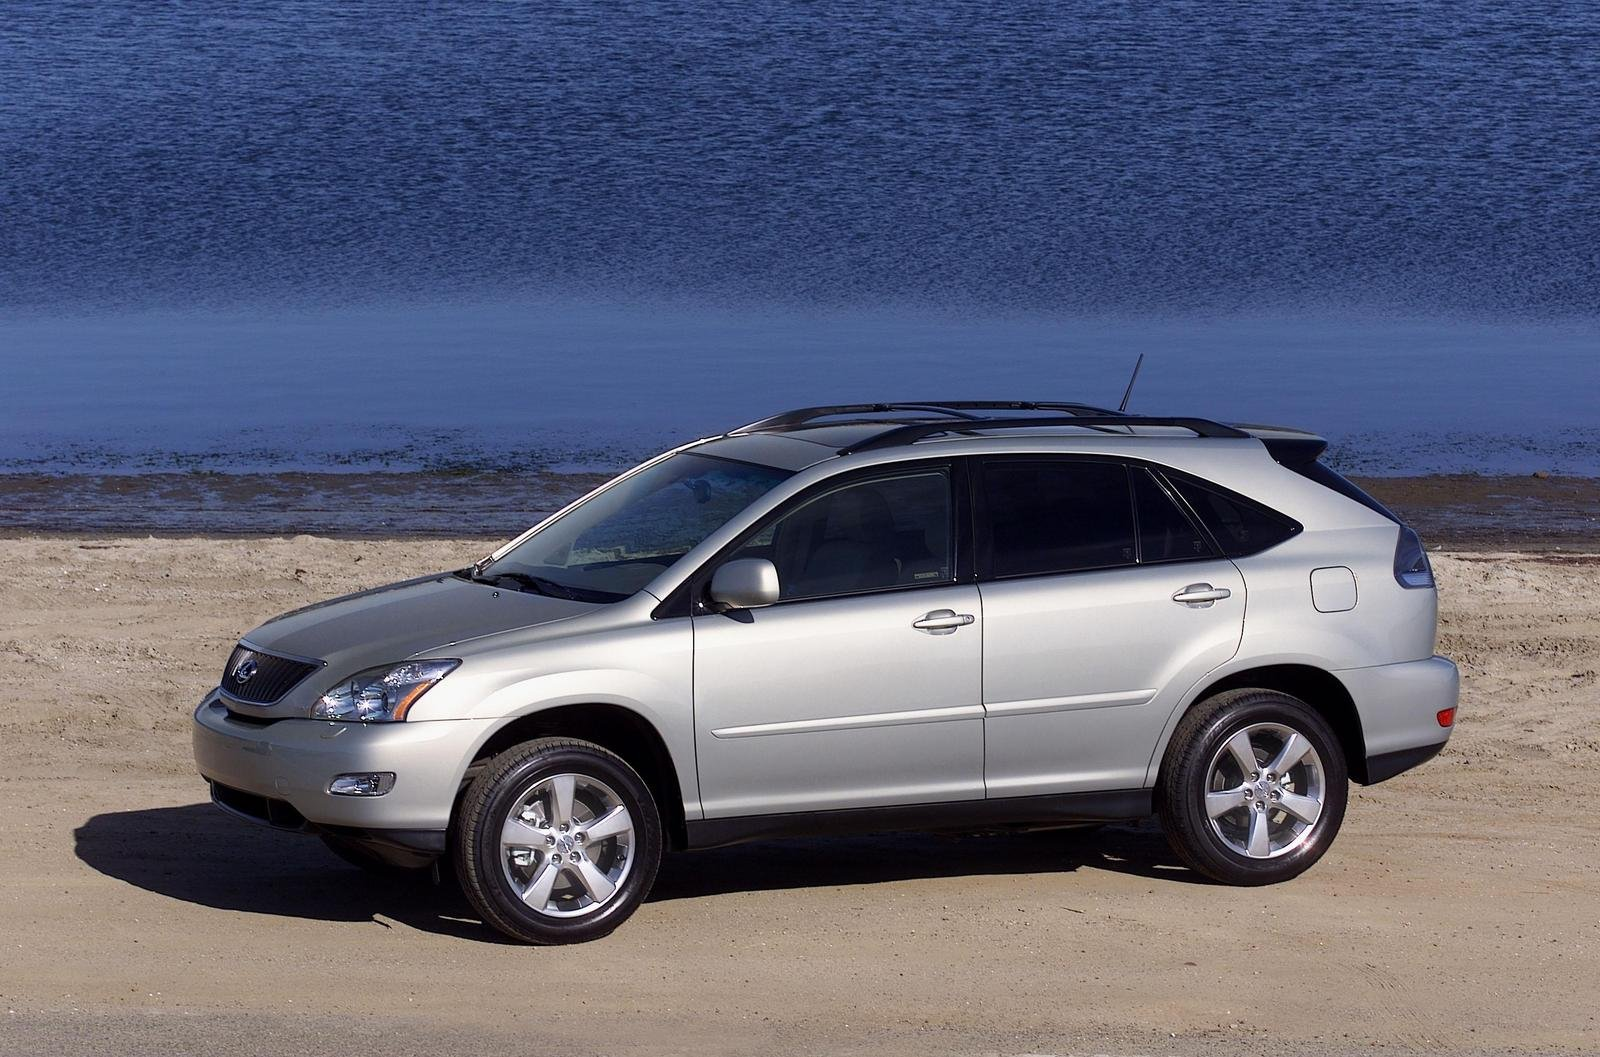 2008 lexus rx 350 luxury suv prices announced picture 142159 car news top speed. Black Bedroom Furniture Sets. Home Design Ideas